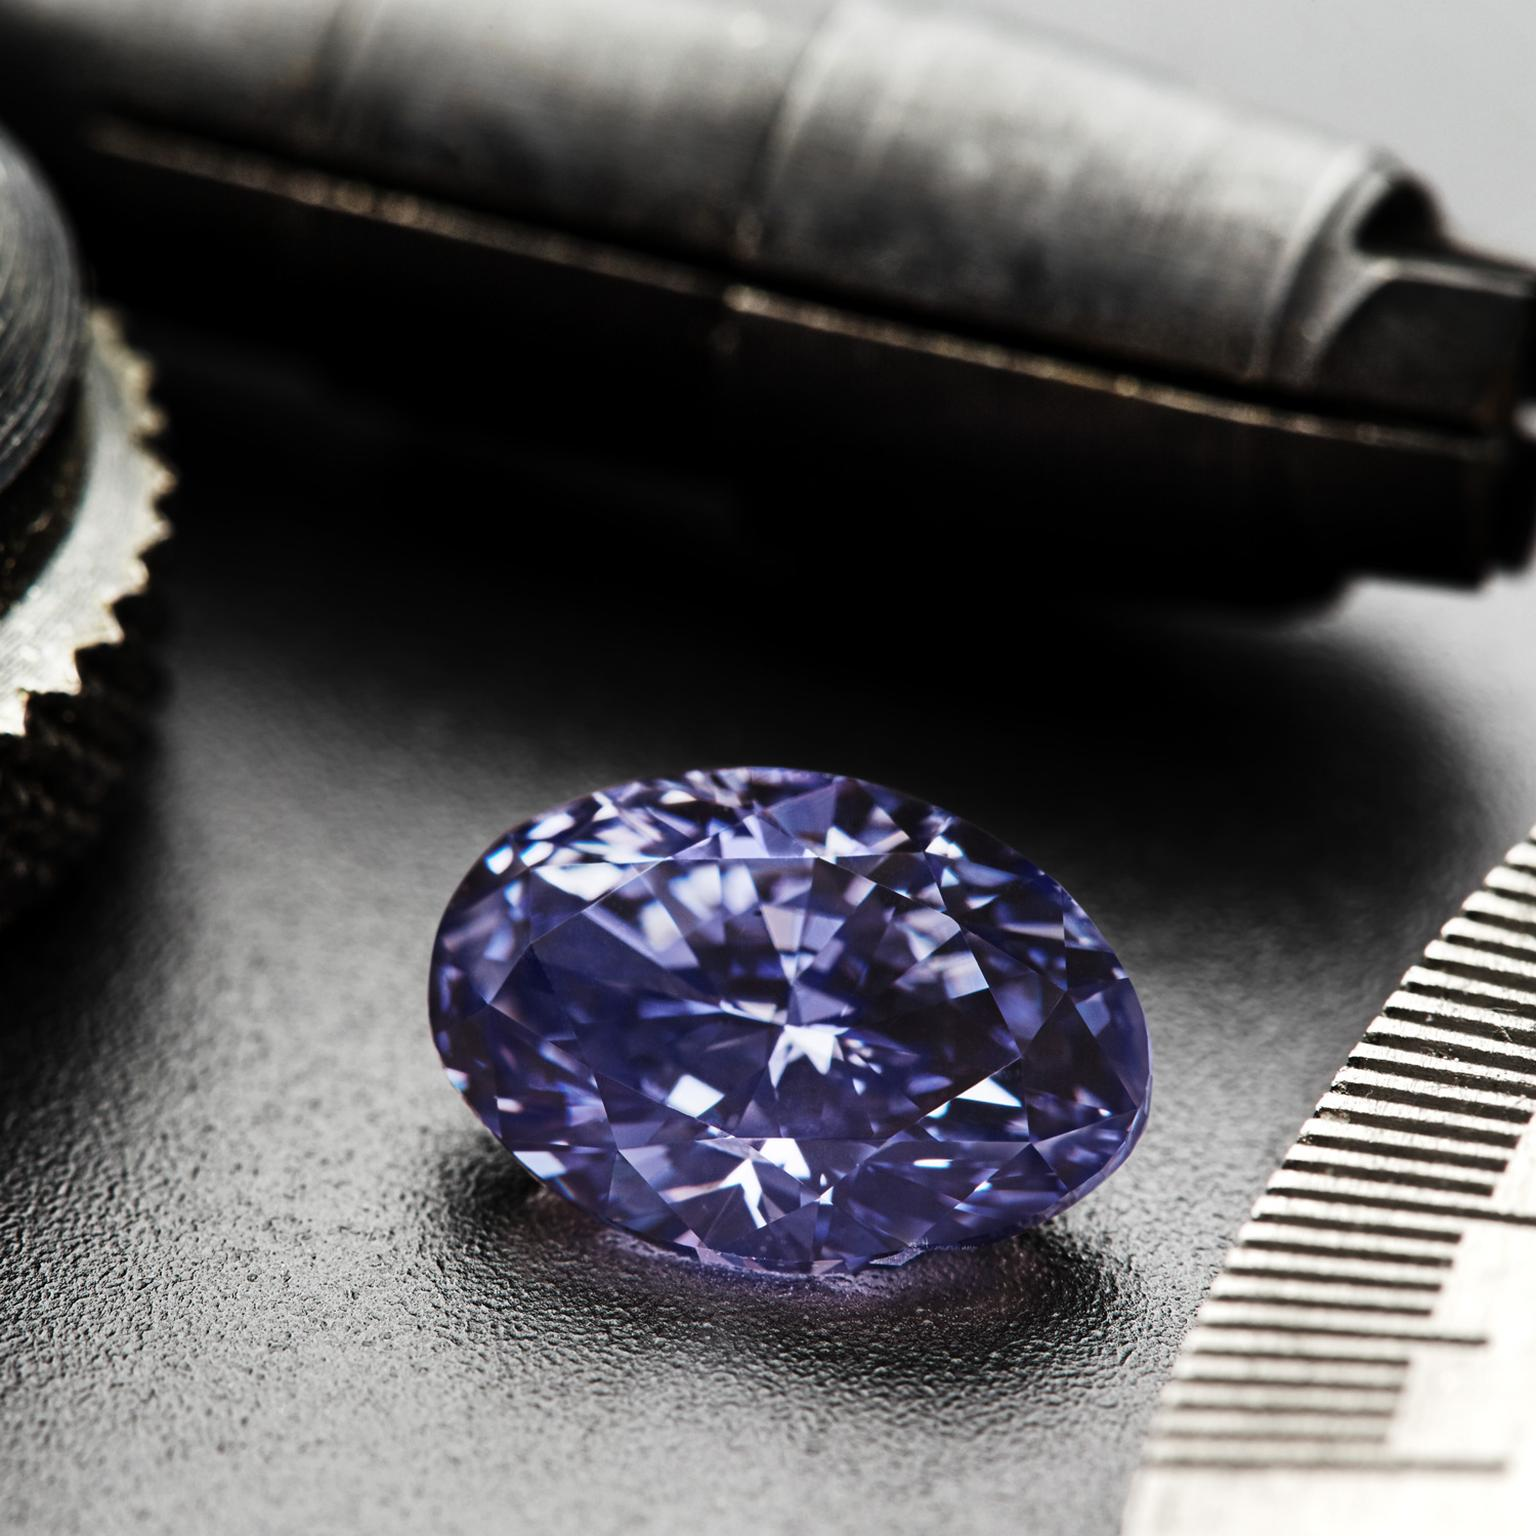 The Argyle Violet diamond